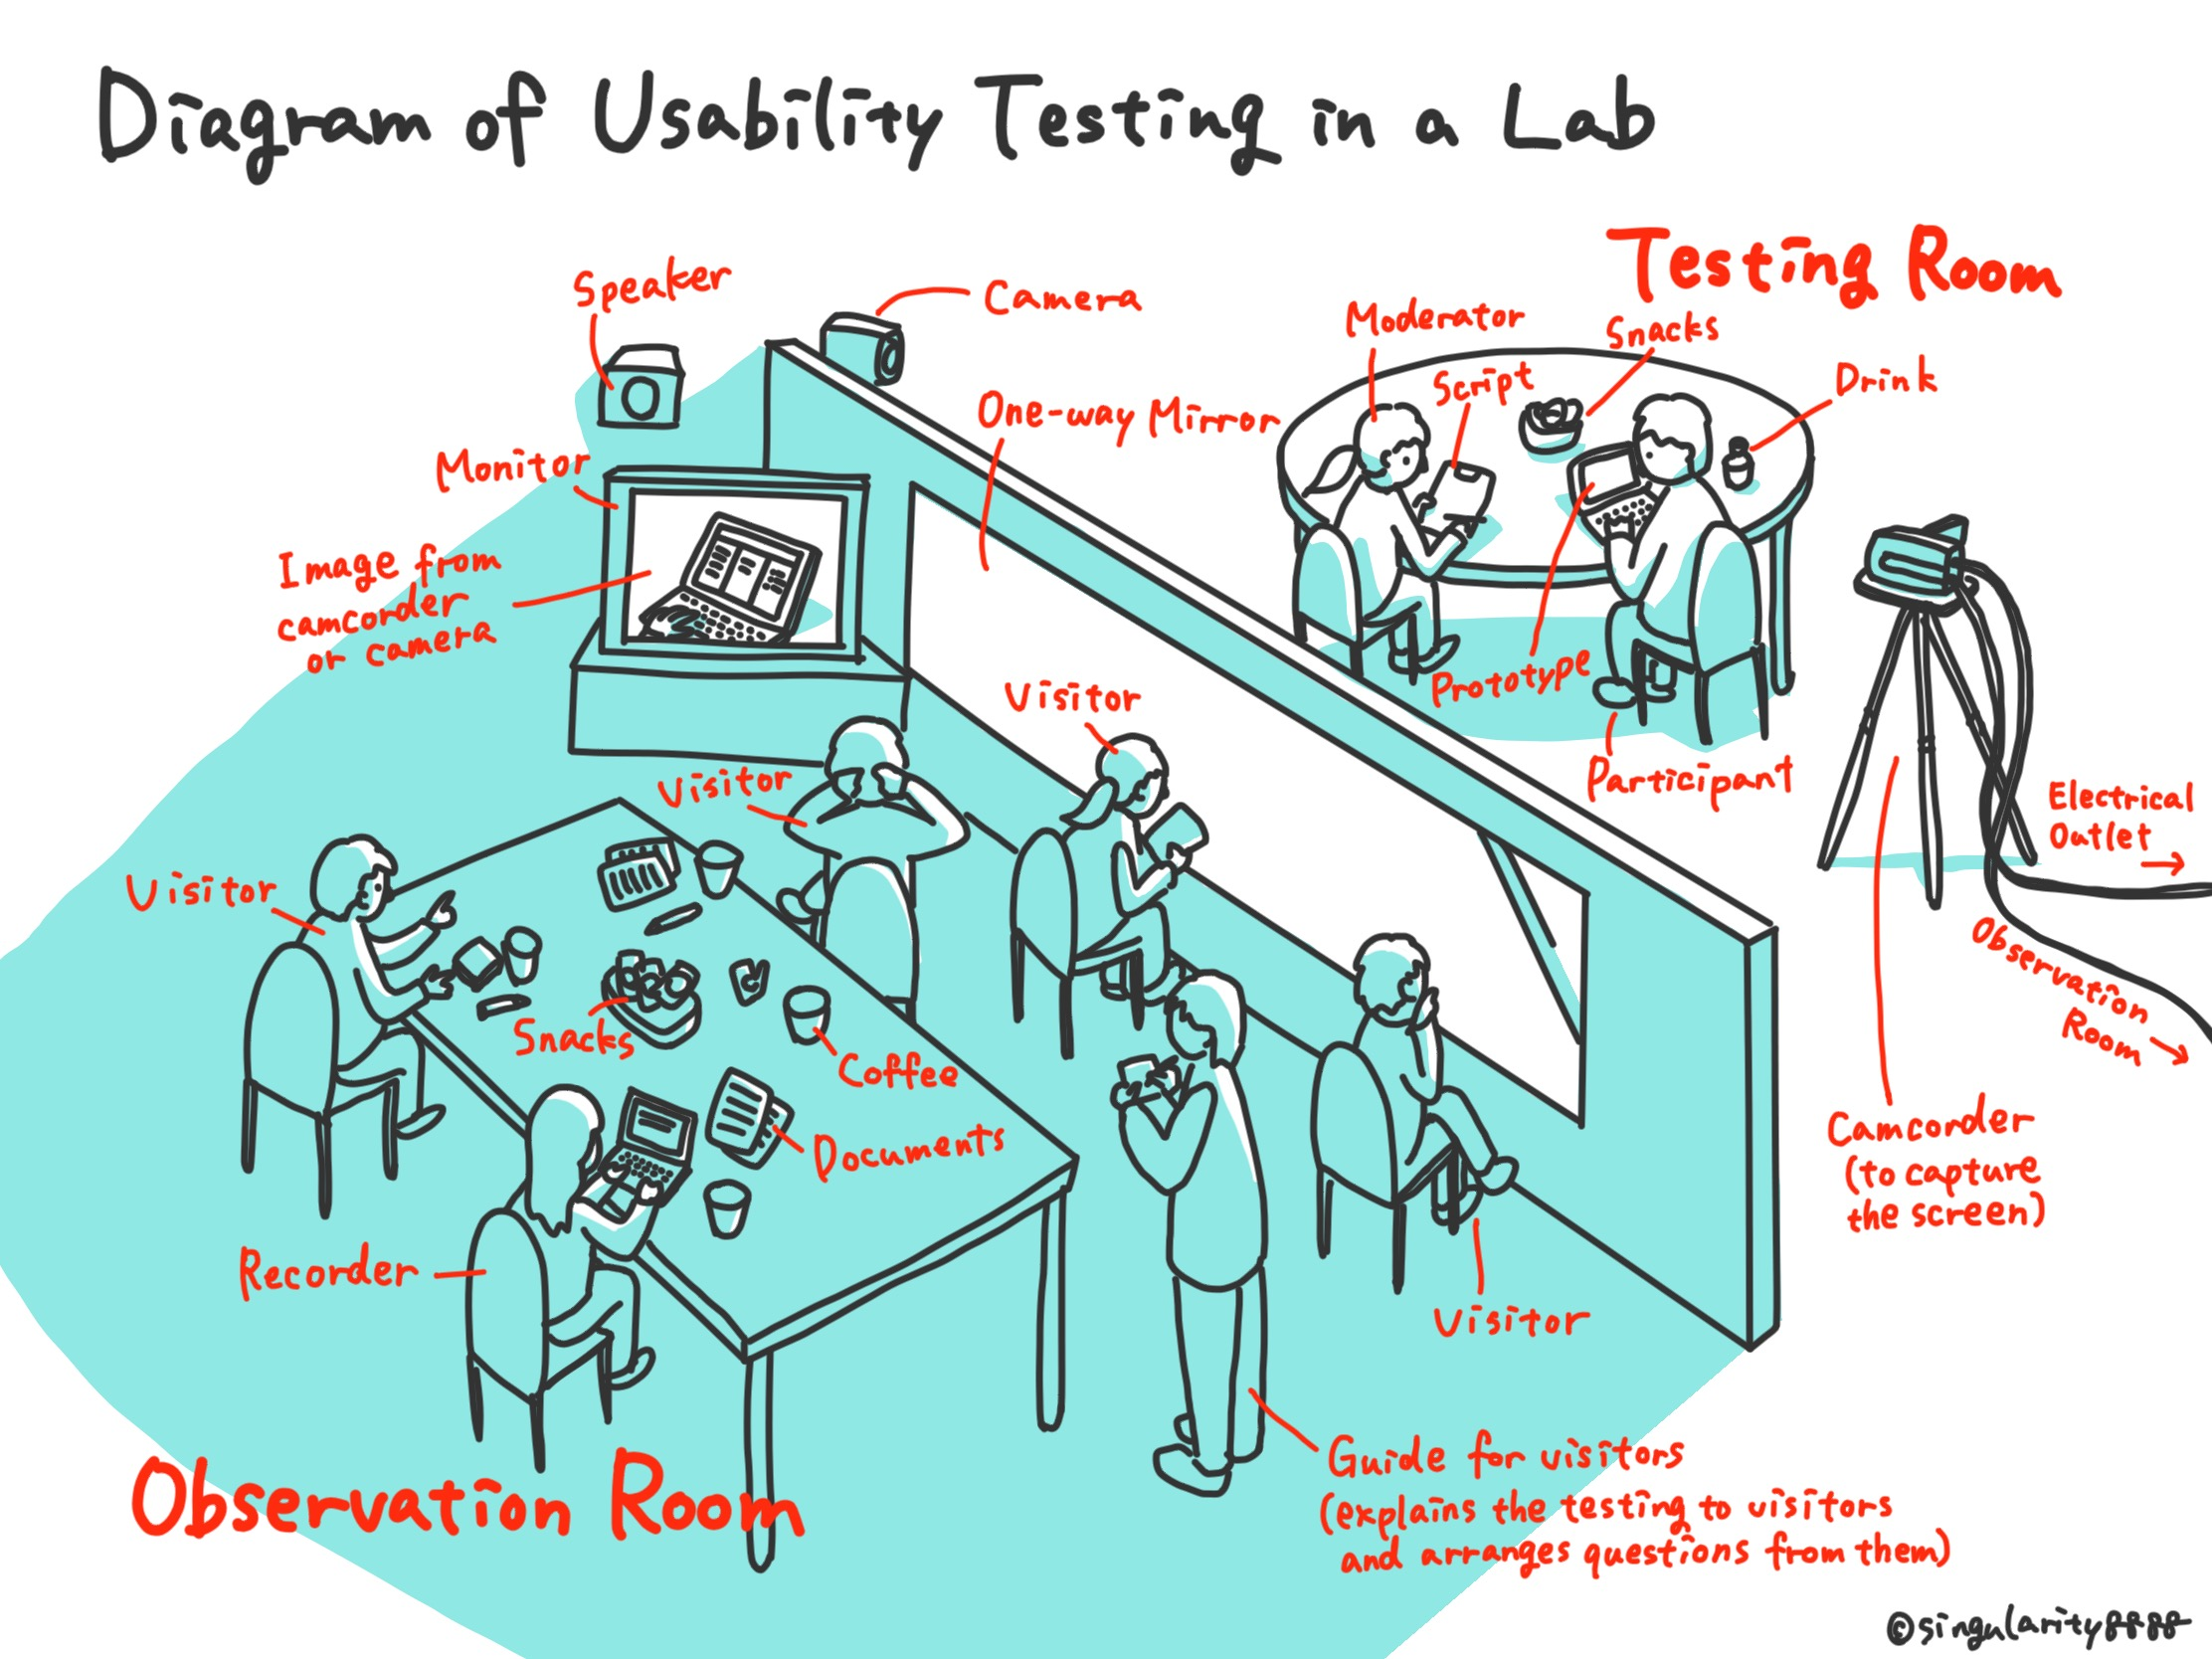 Diagram of Usability Testing in a Lab Image